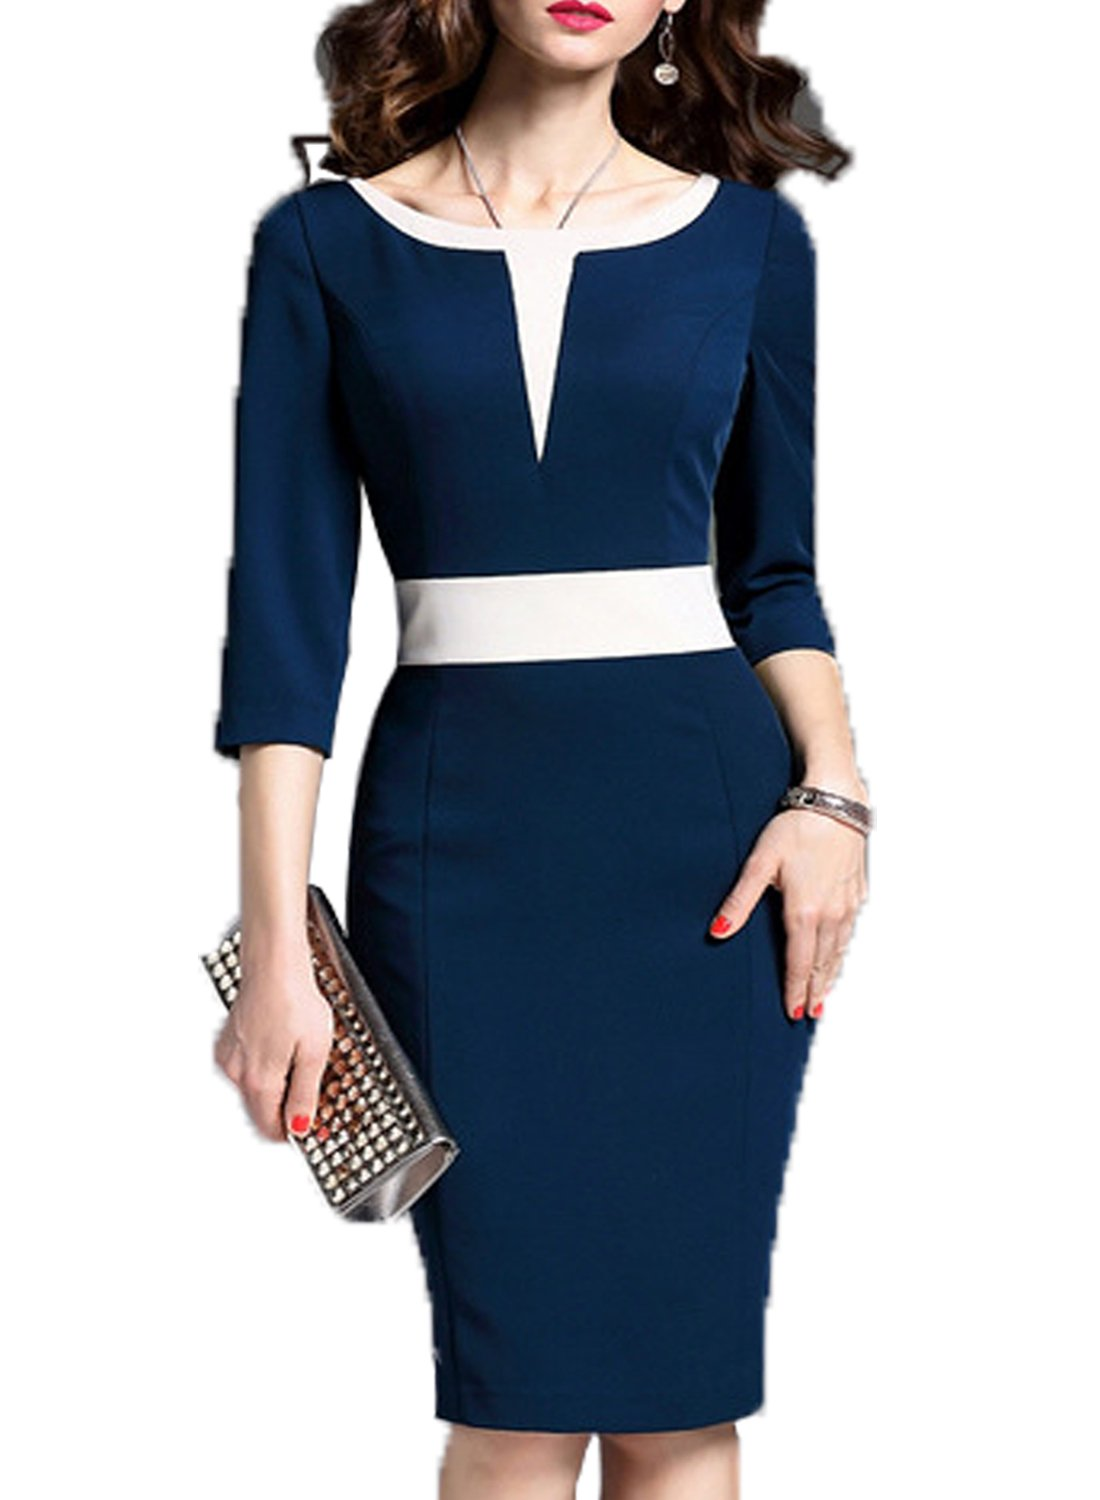 WOOSEA Women's 2/3 Sleeve Colorblock Slim Bodycon Business Pencil Dress (Small, Navy Blue)